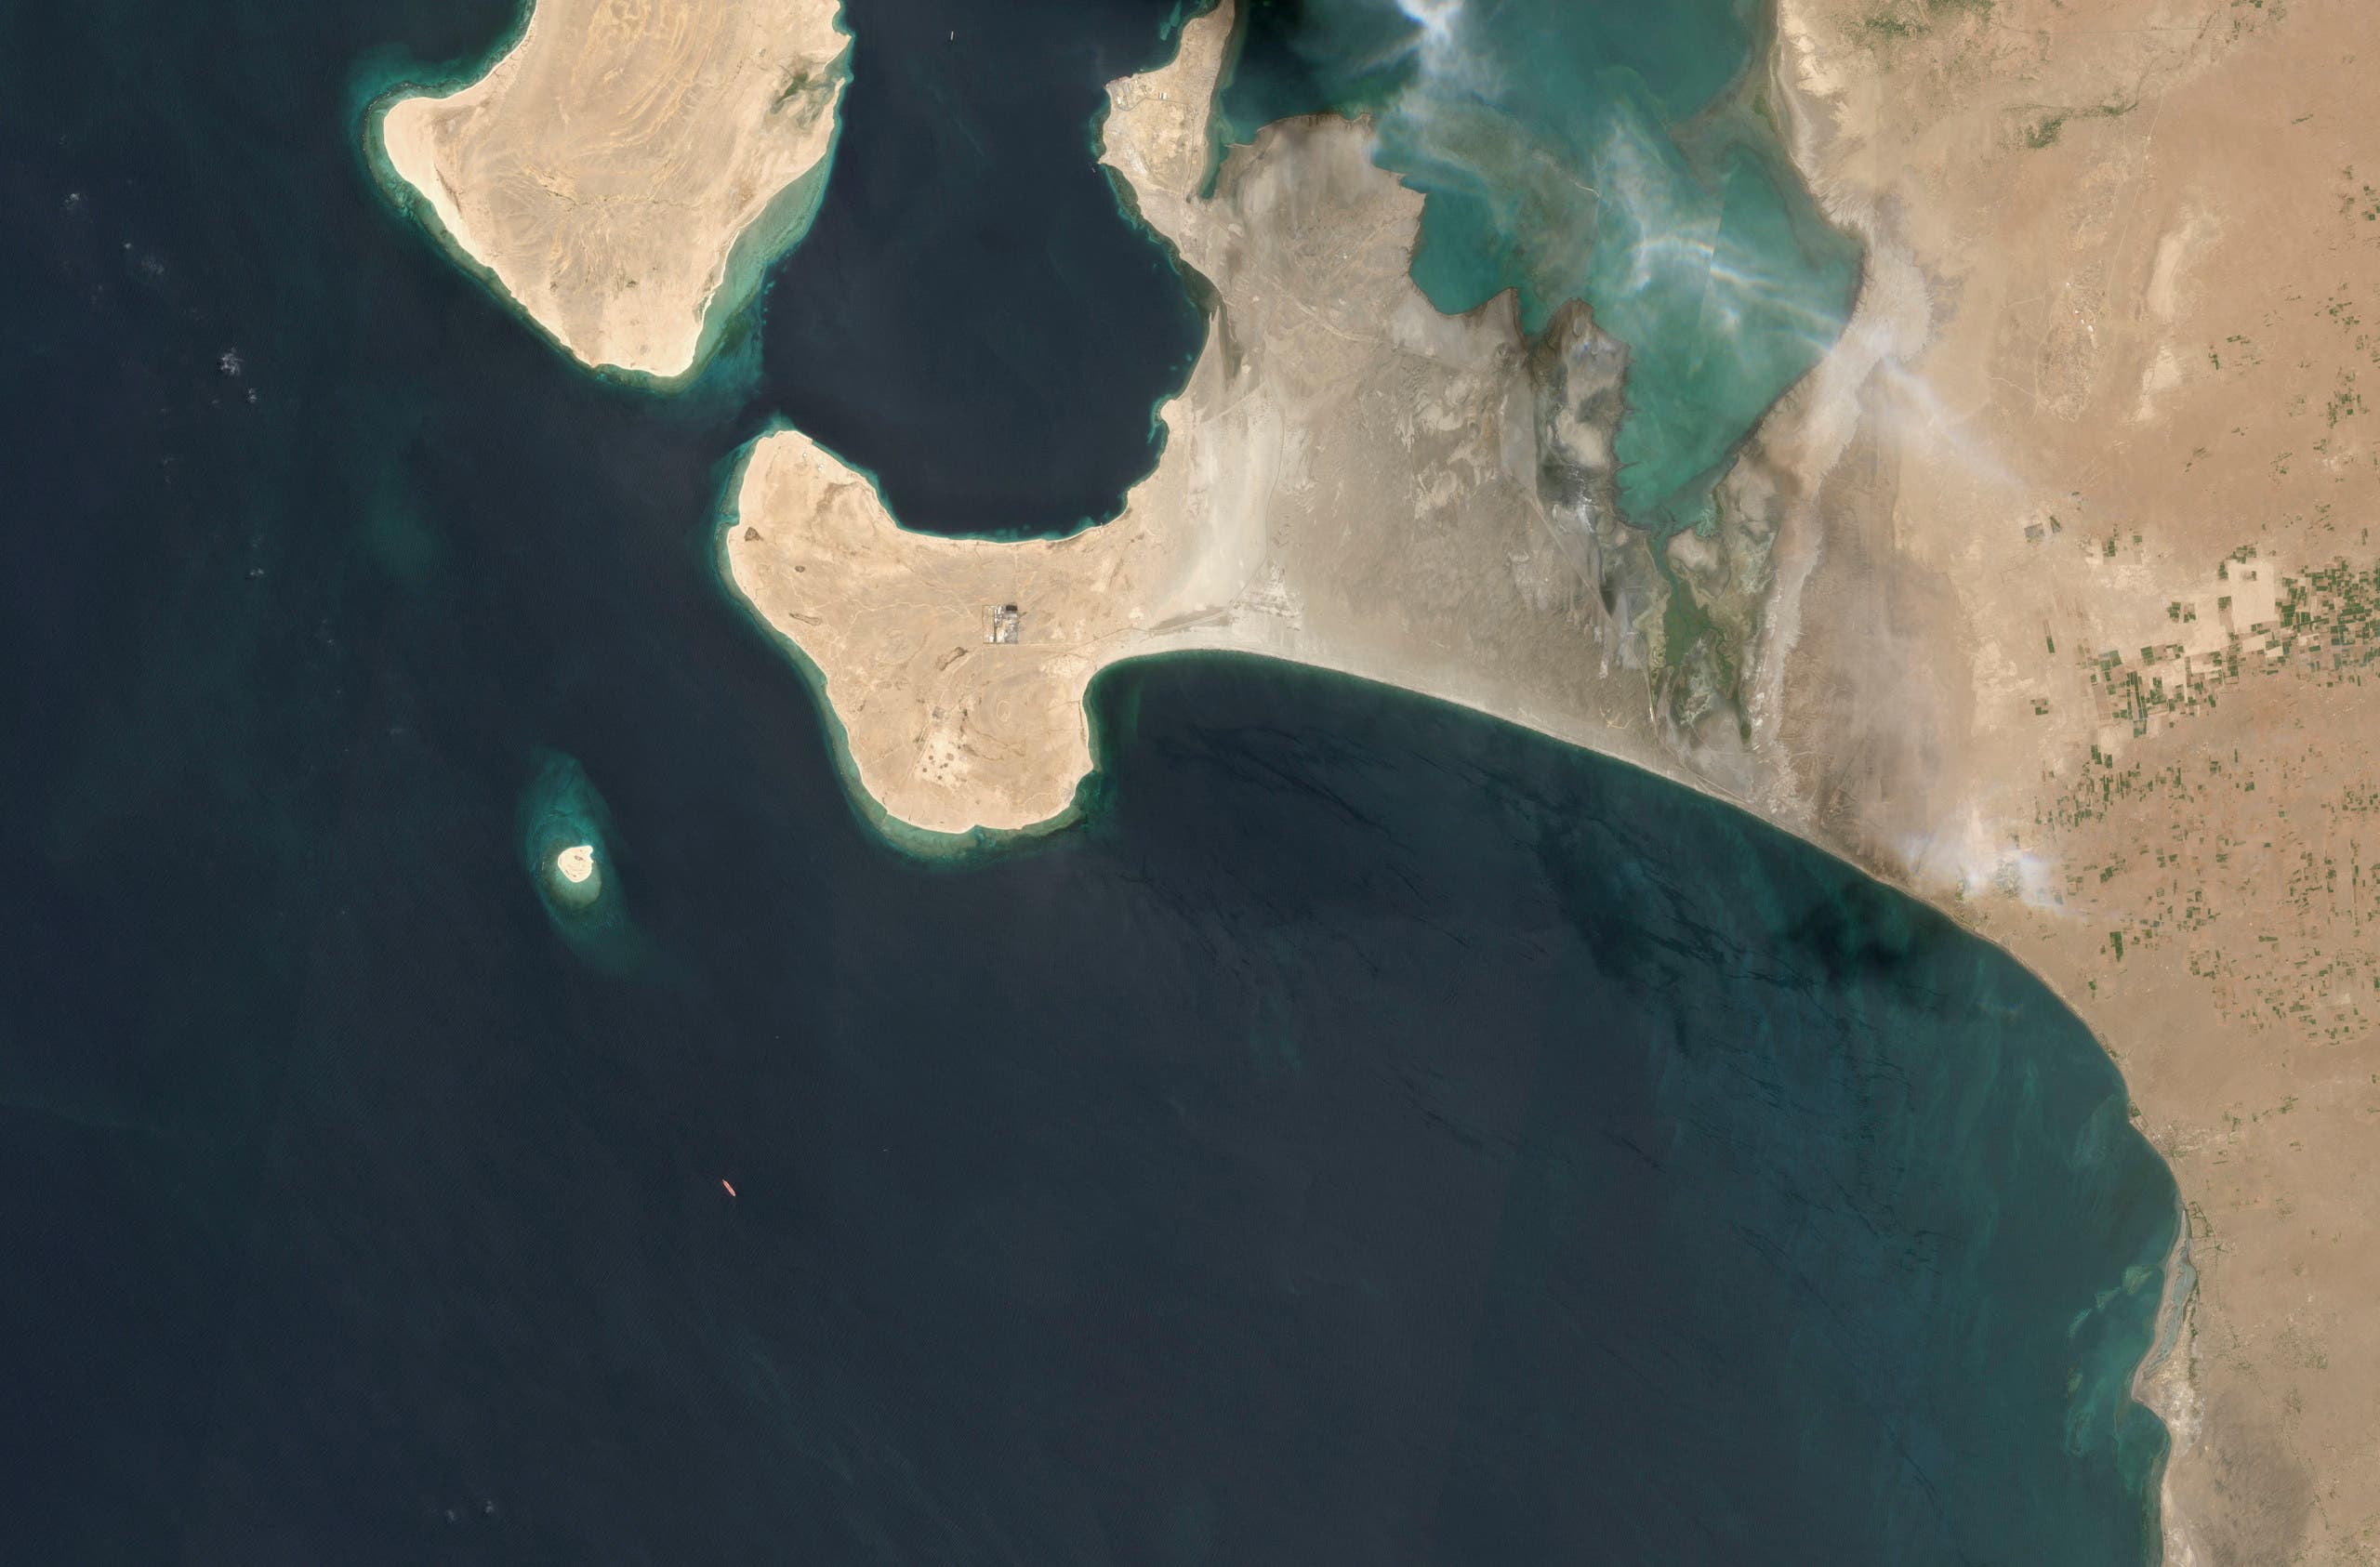 This handout satellite image obtained courtesy of Maxar Technologies on July 19, 2020 shows an overview of the FSO Safer oil tanker on June 19, 2020 off the port of Ras Isa. (Satellite image ©2020 Maxar Technologies/AFP)